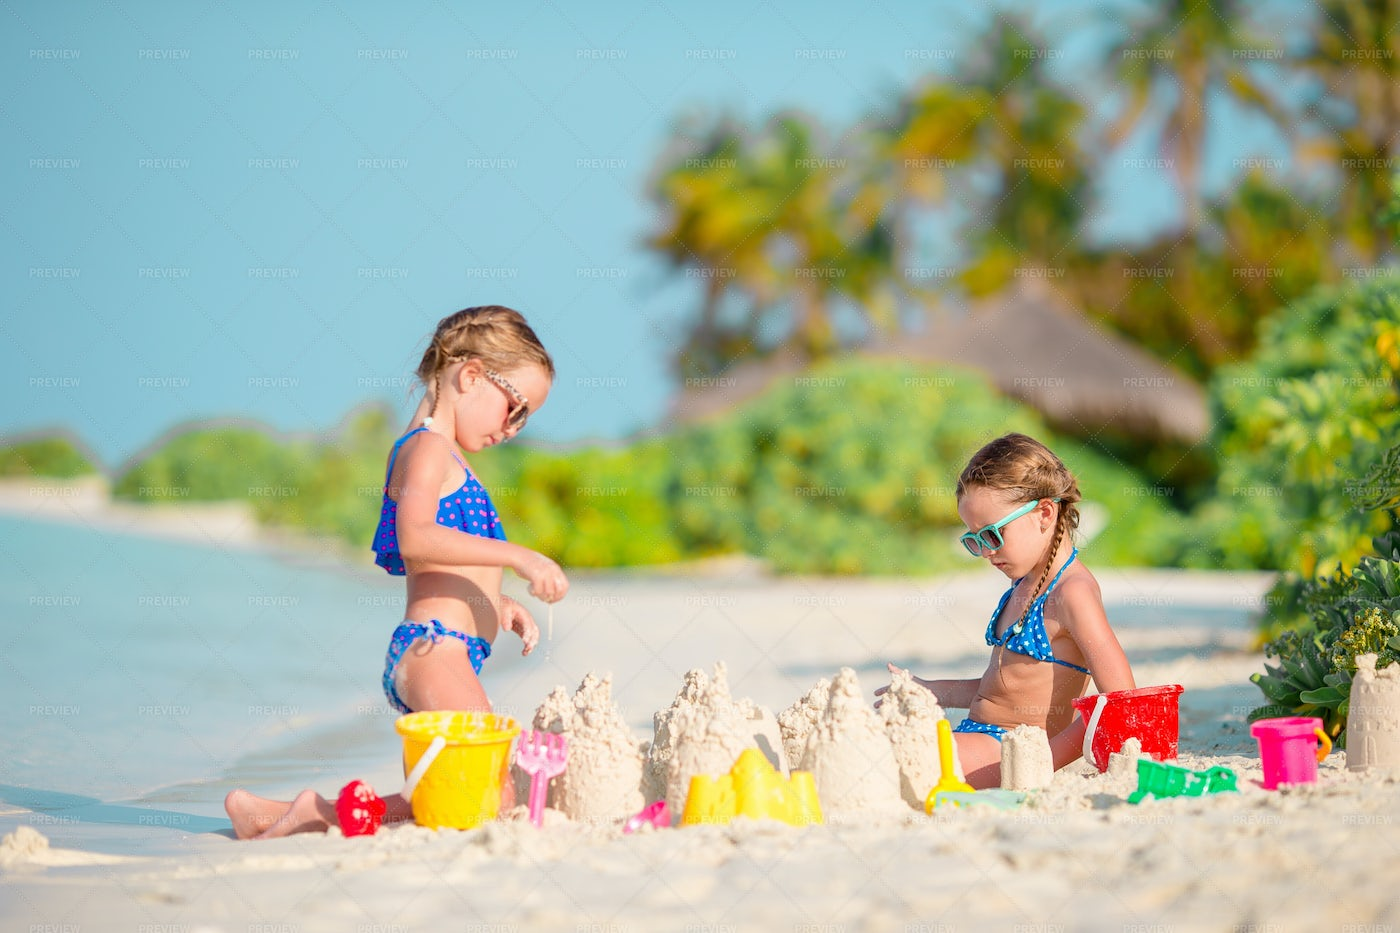 Two Kids Making Sand Castles: Stock Photos